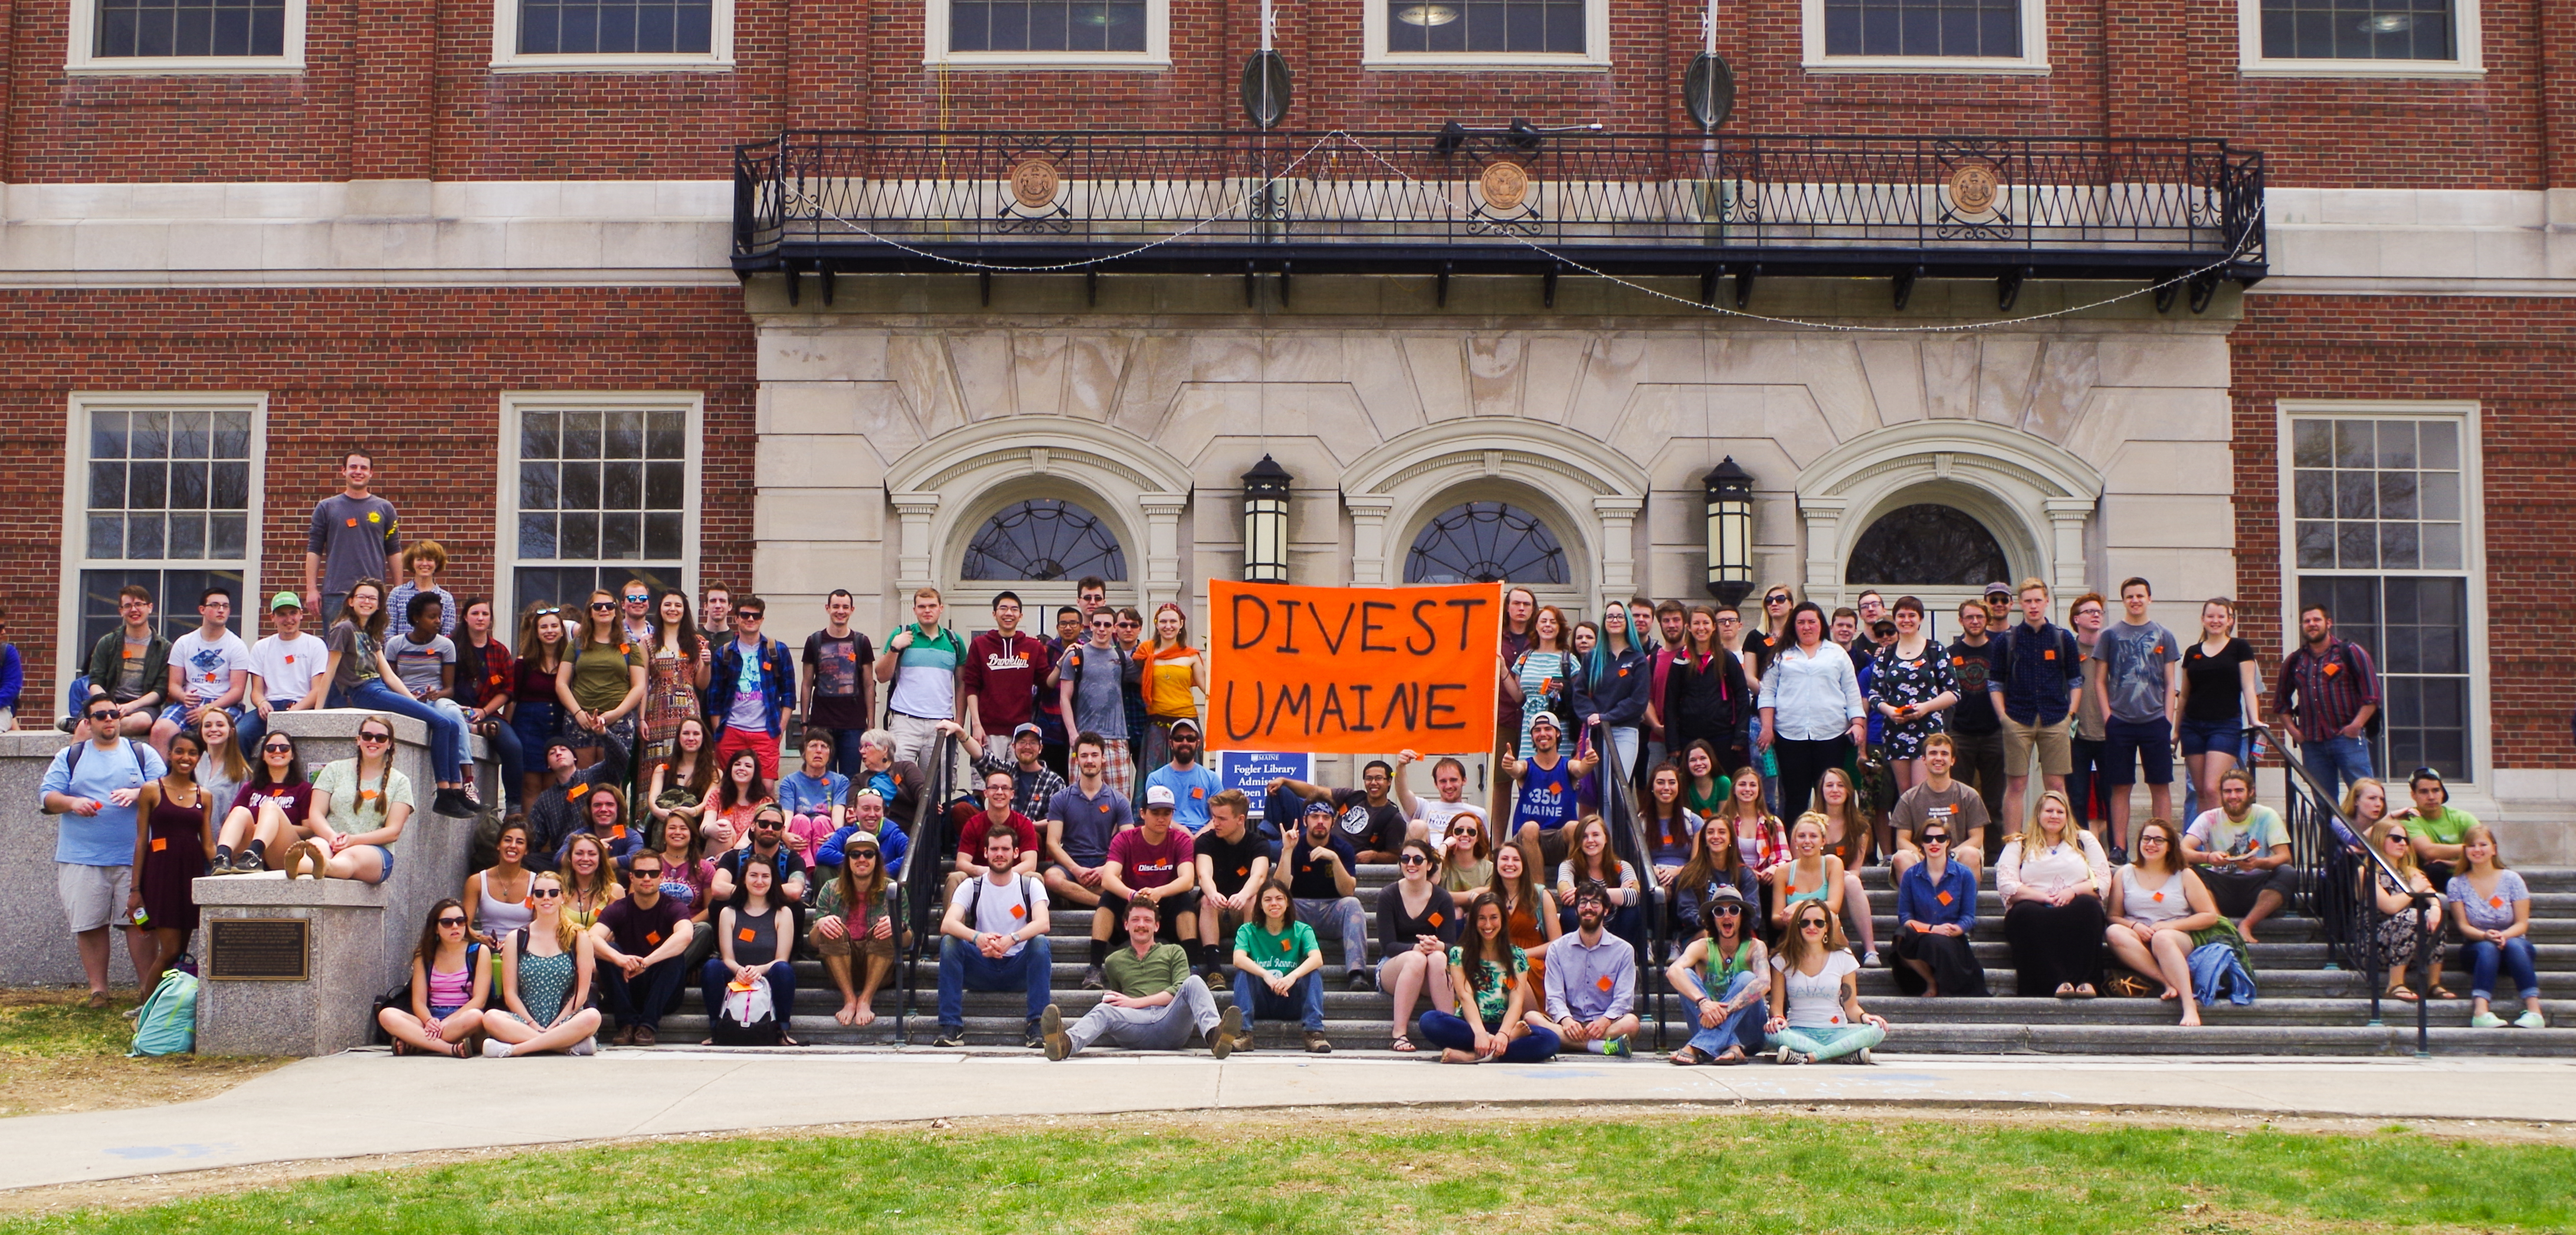 The organization Divest UMaine poses on the Fogler Library steps during the EarthFest celebration on Friday, April 22, 2016. Divest UMaine tabled at the event and spread awareness about their efforts to encourage the UMaine Board of Trustees to divest from fossil fuels.